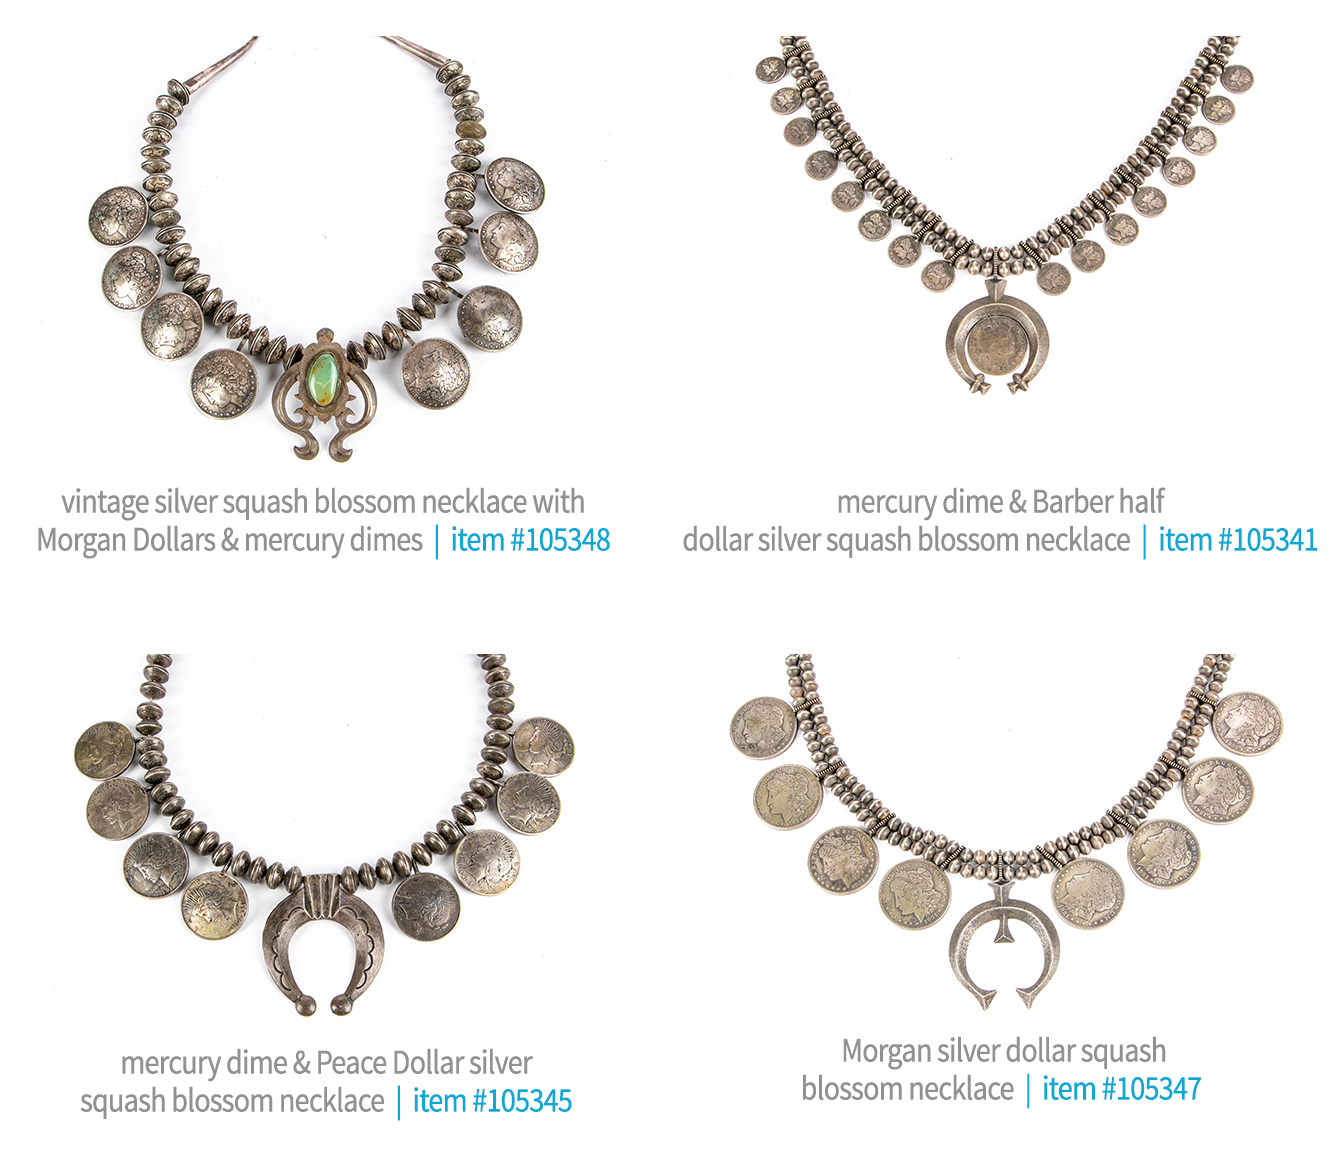 Additional Squash Blossom Necklaces in Native American & Western Collection Sale